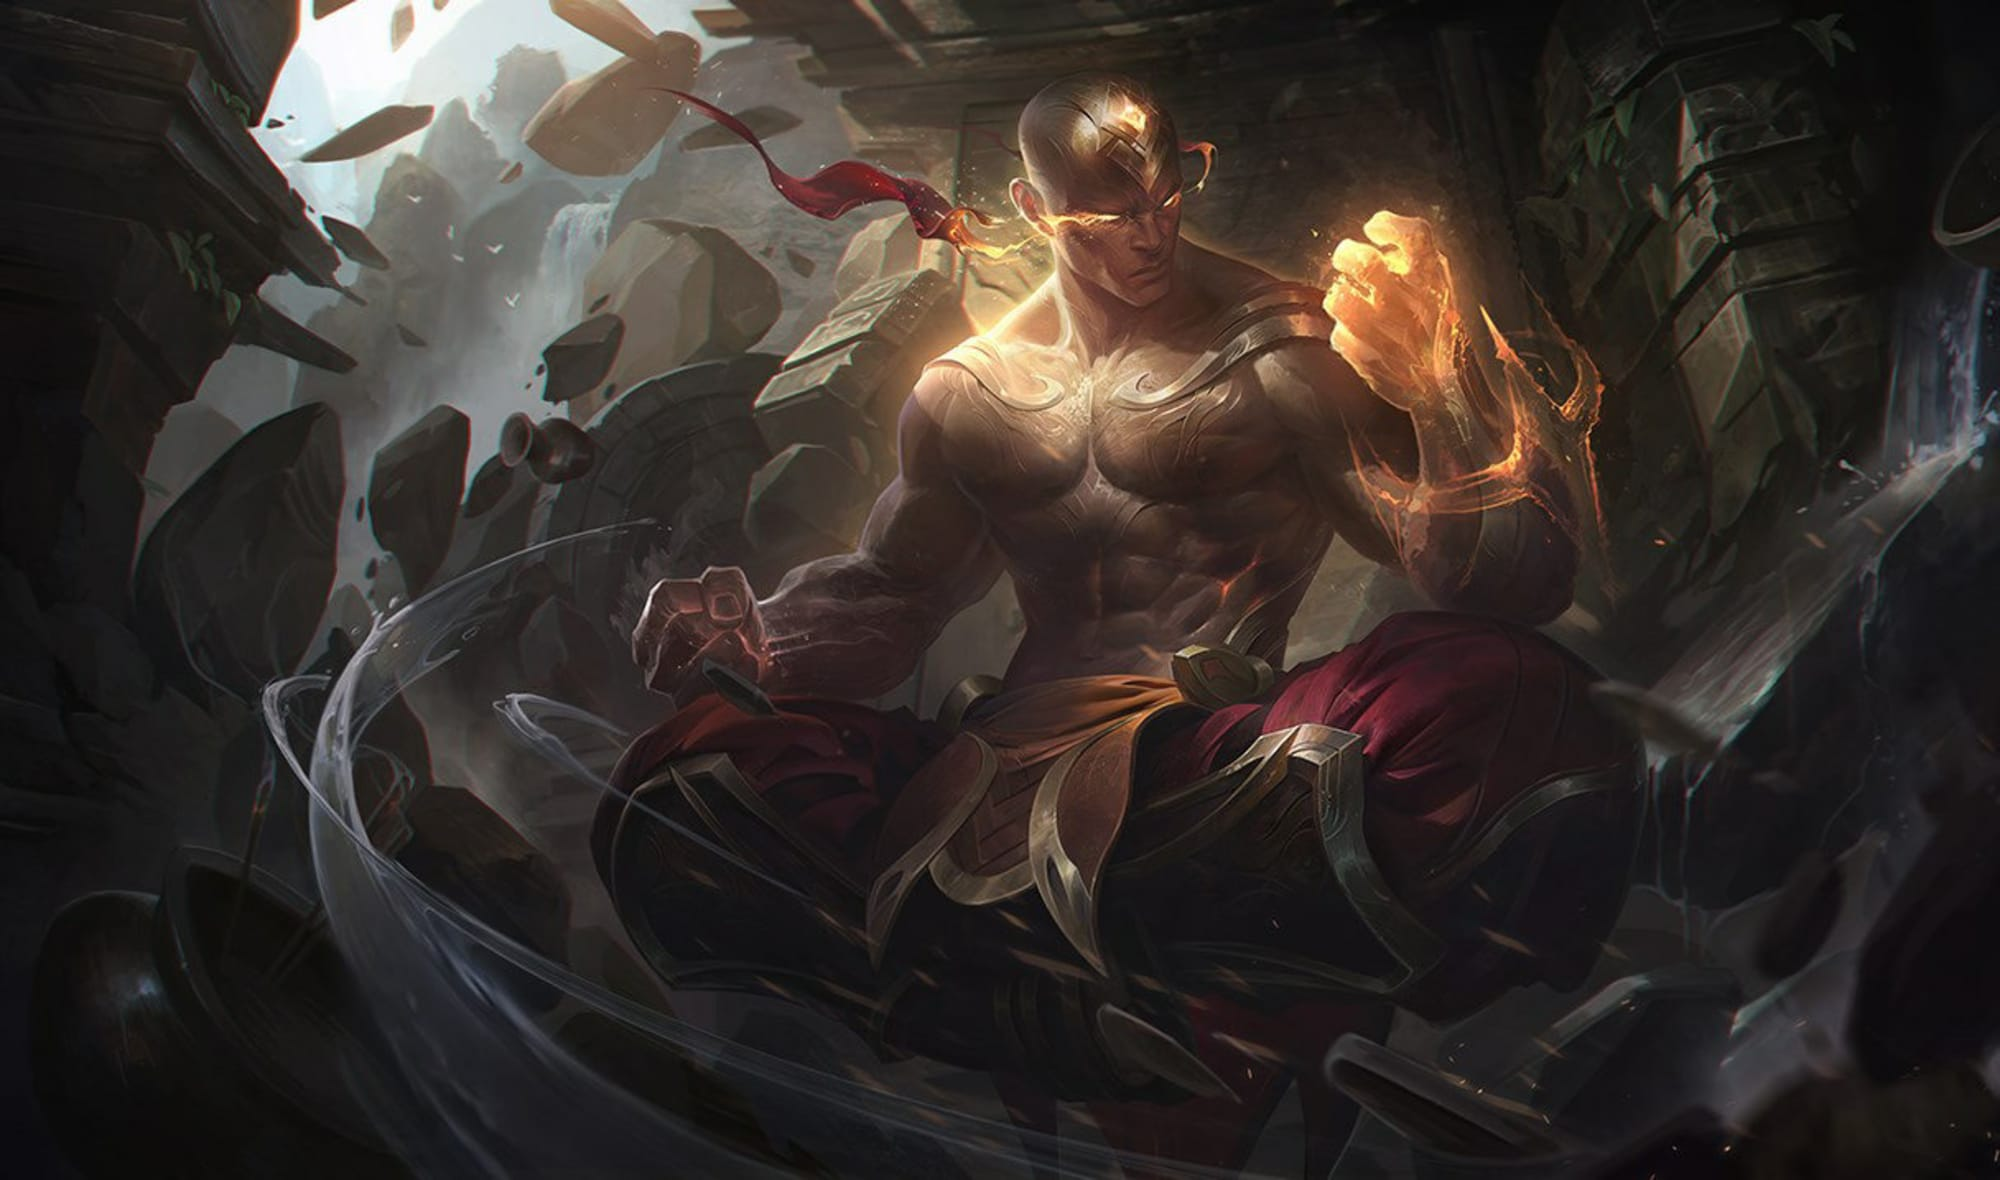 God Fist Lee Sin in League of Legends